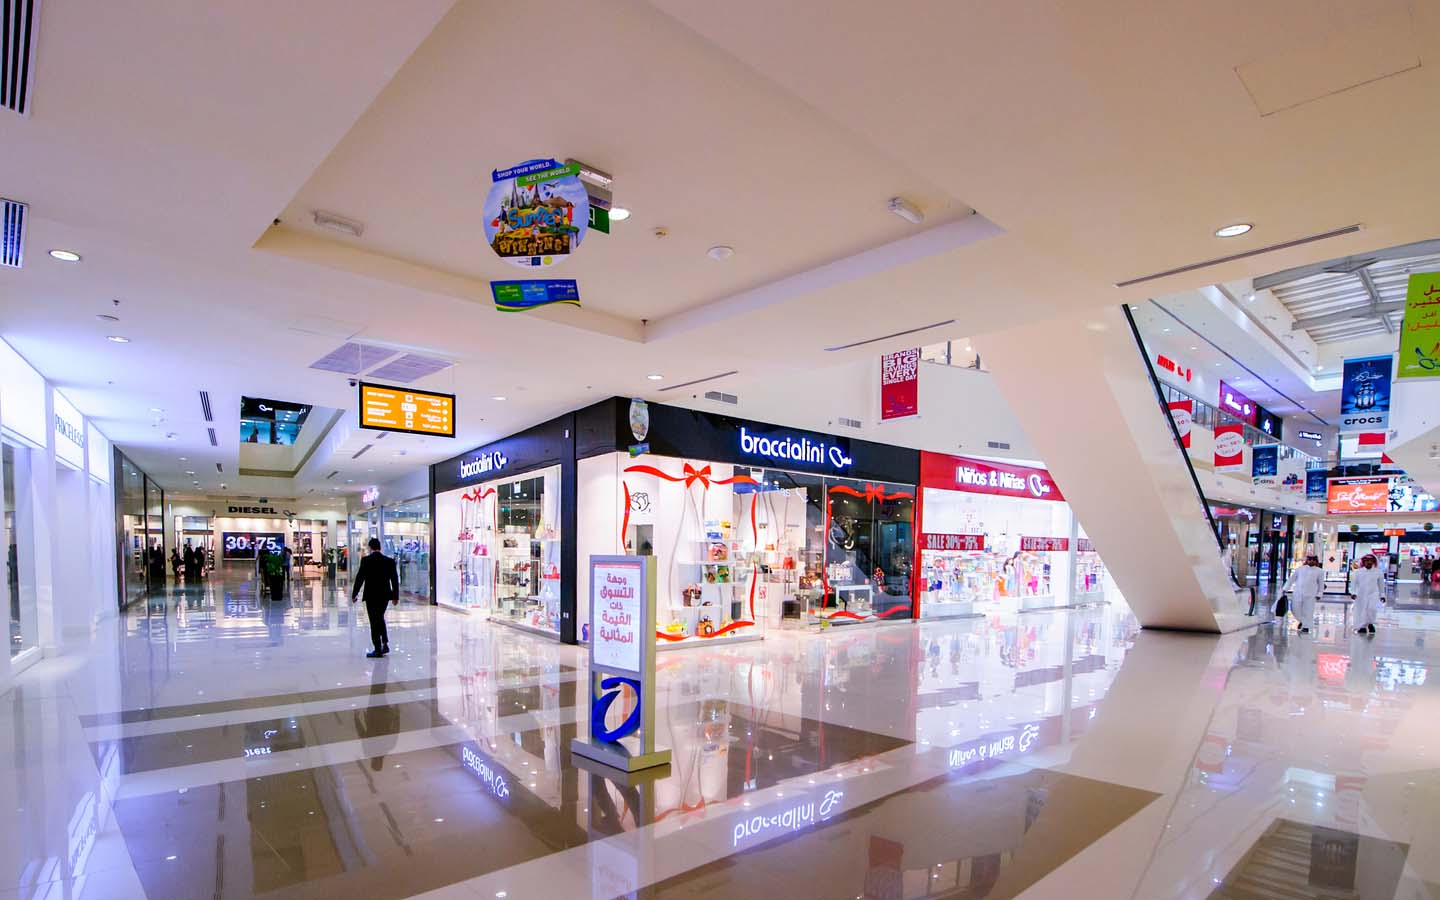 Dubai Outlet Mall stores